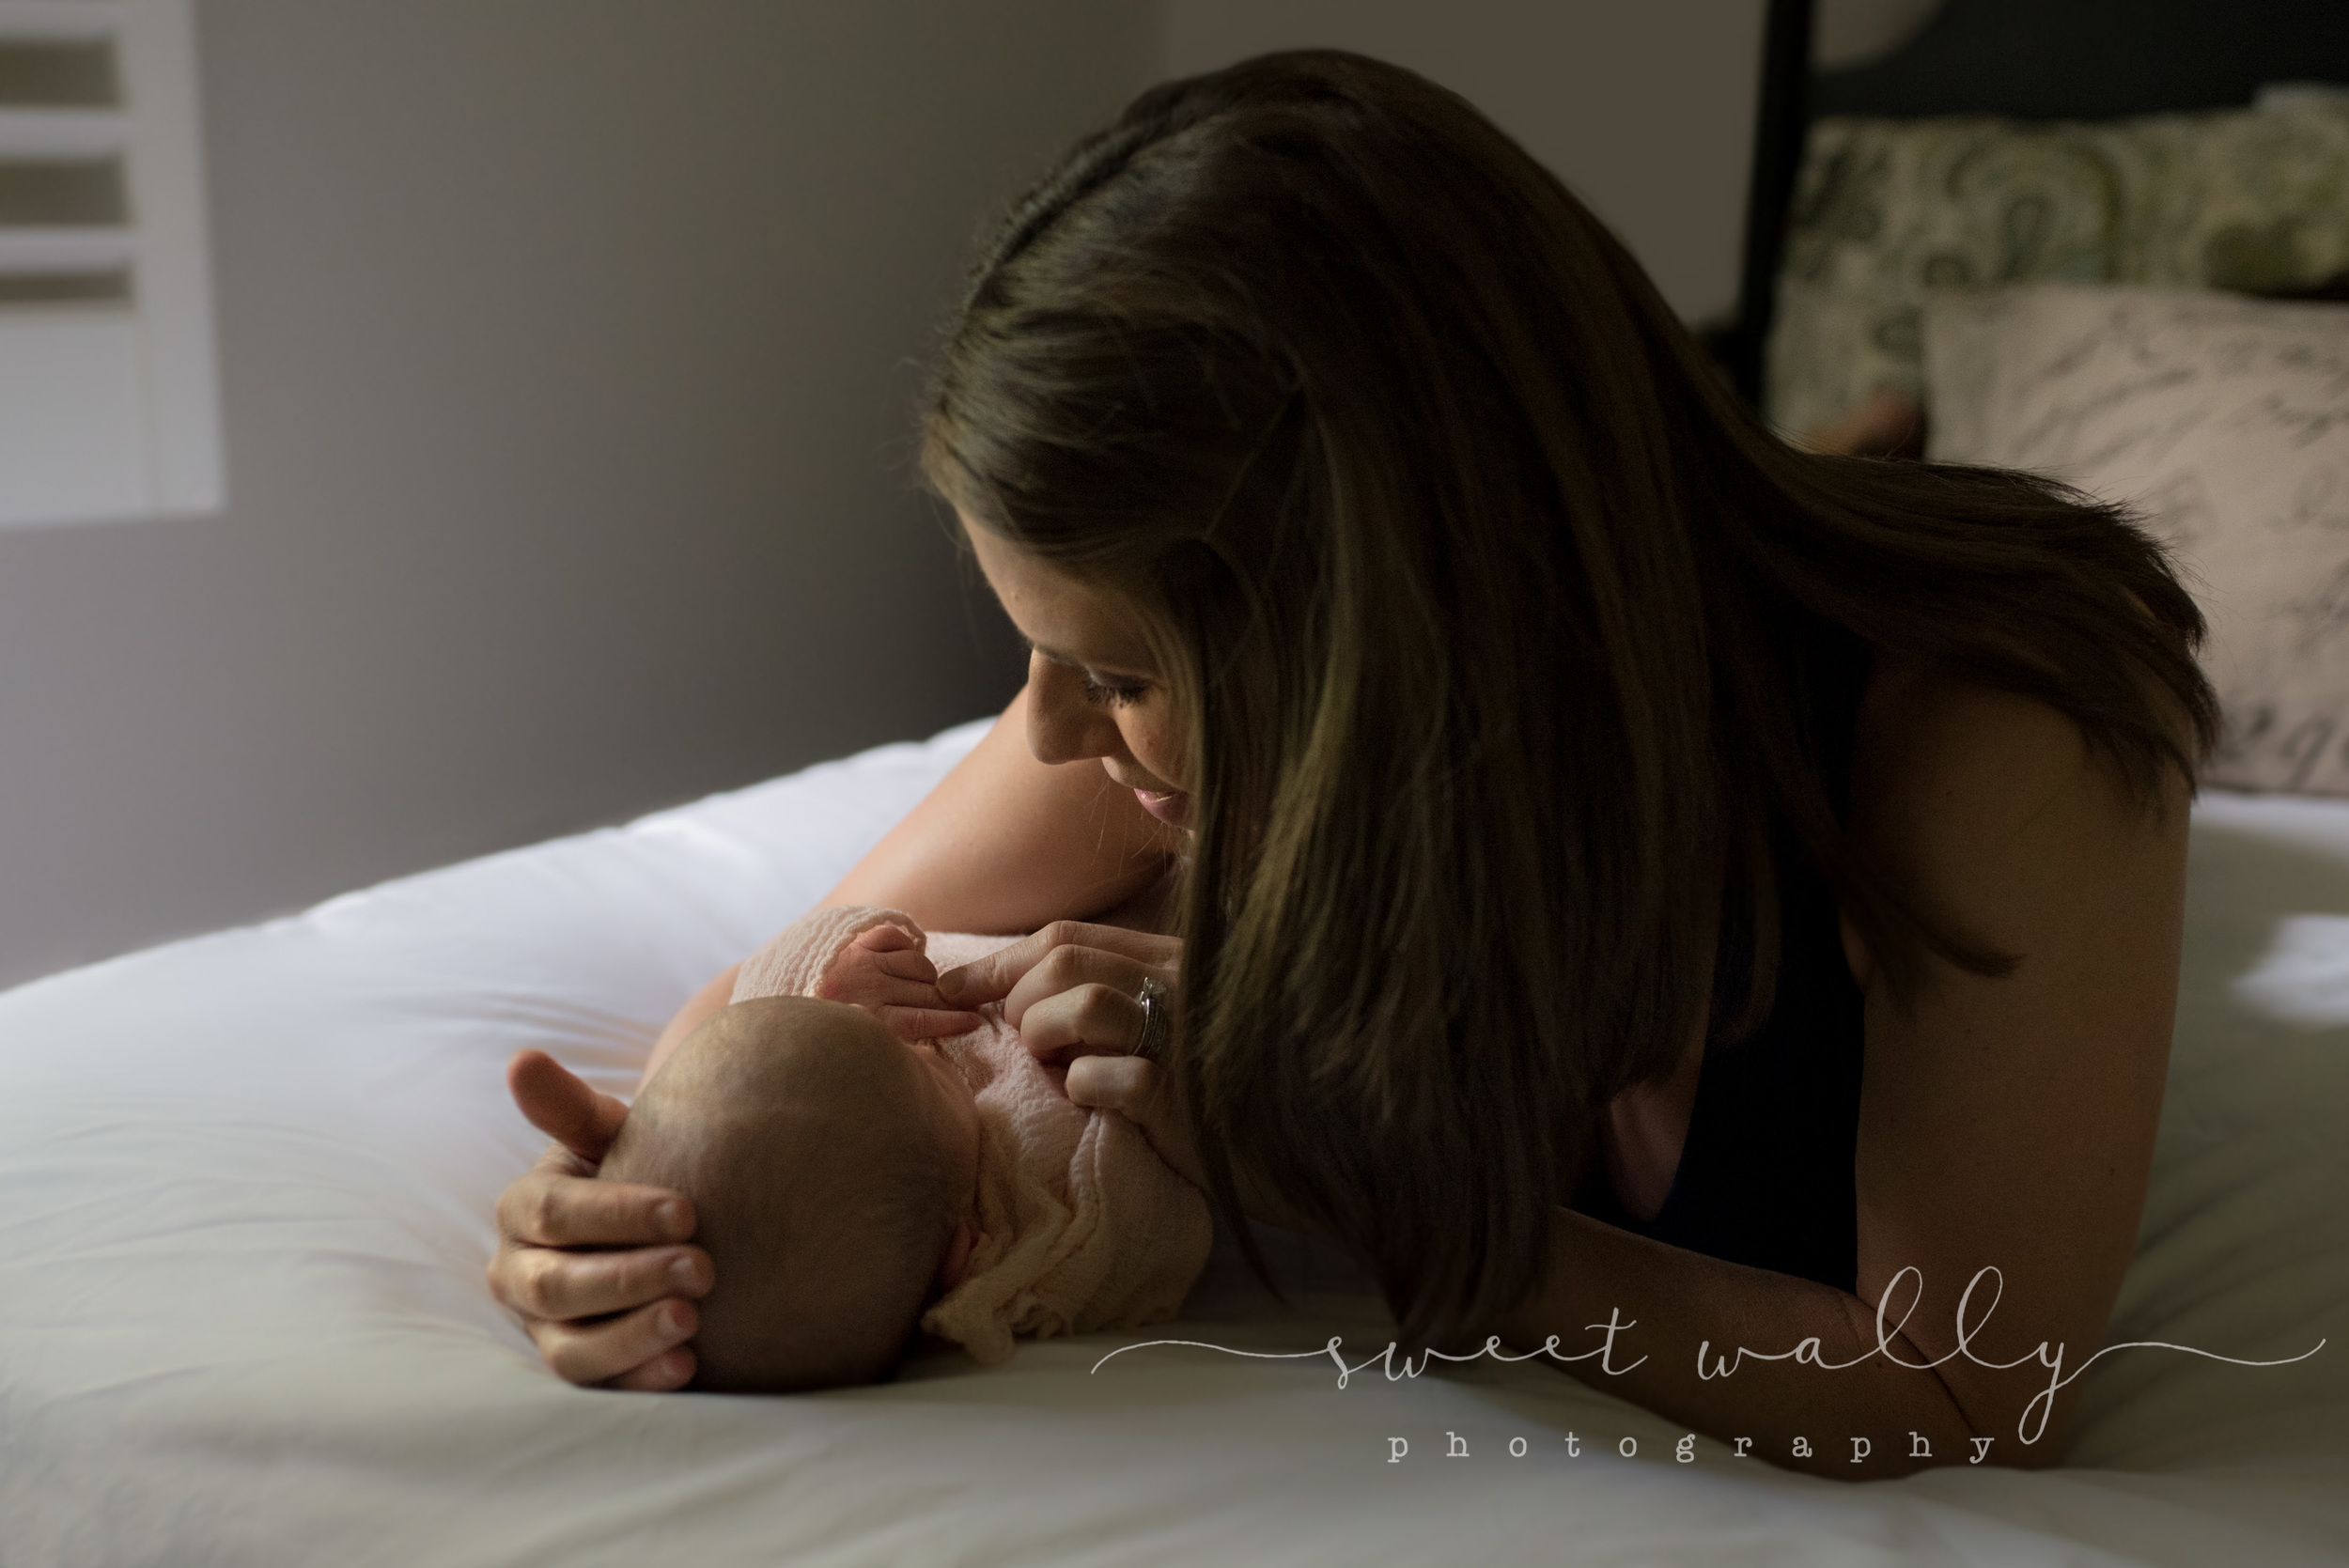 She got her girl | Lifestyle Newborn Session | Nashville Newborn Photographer | Sweet Wally Photography